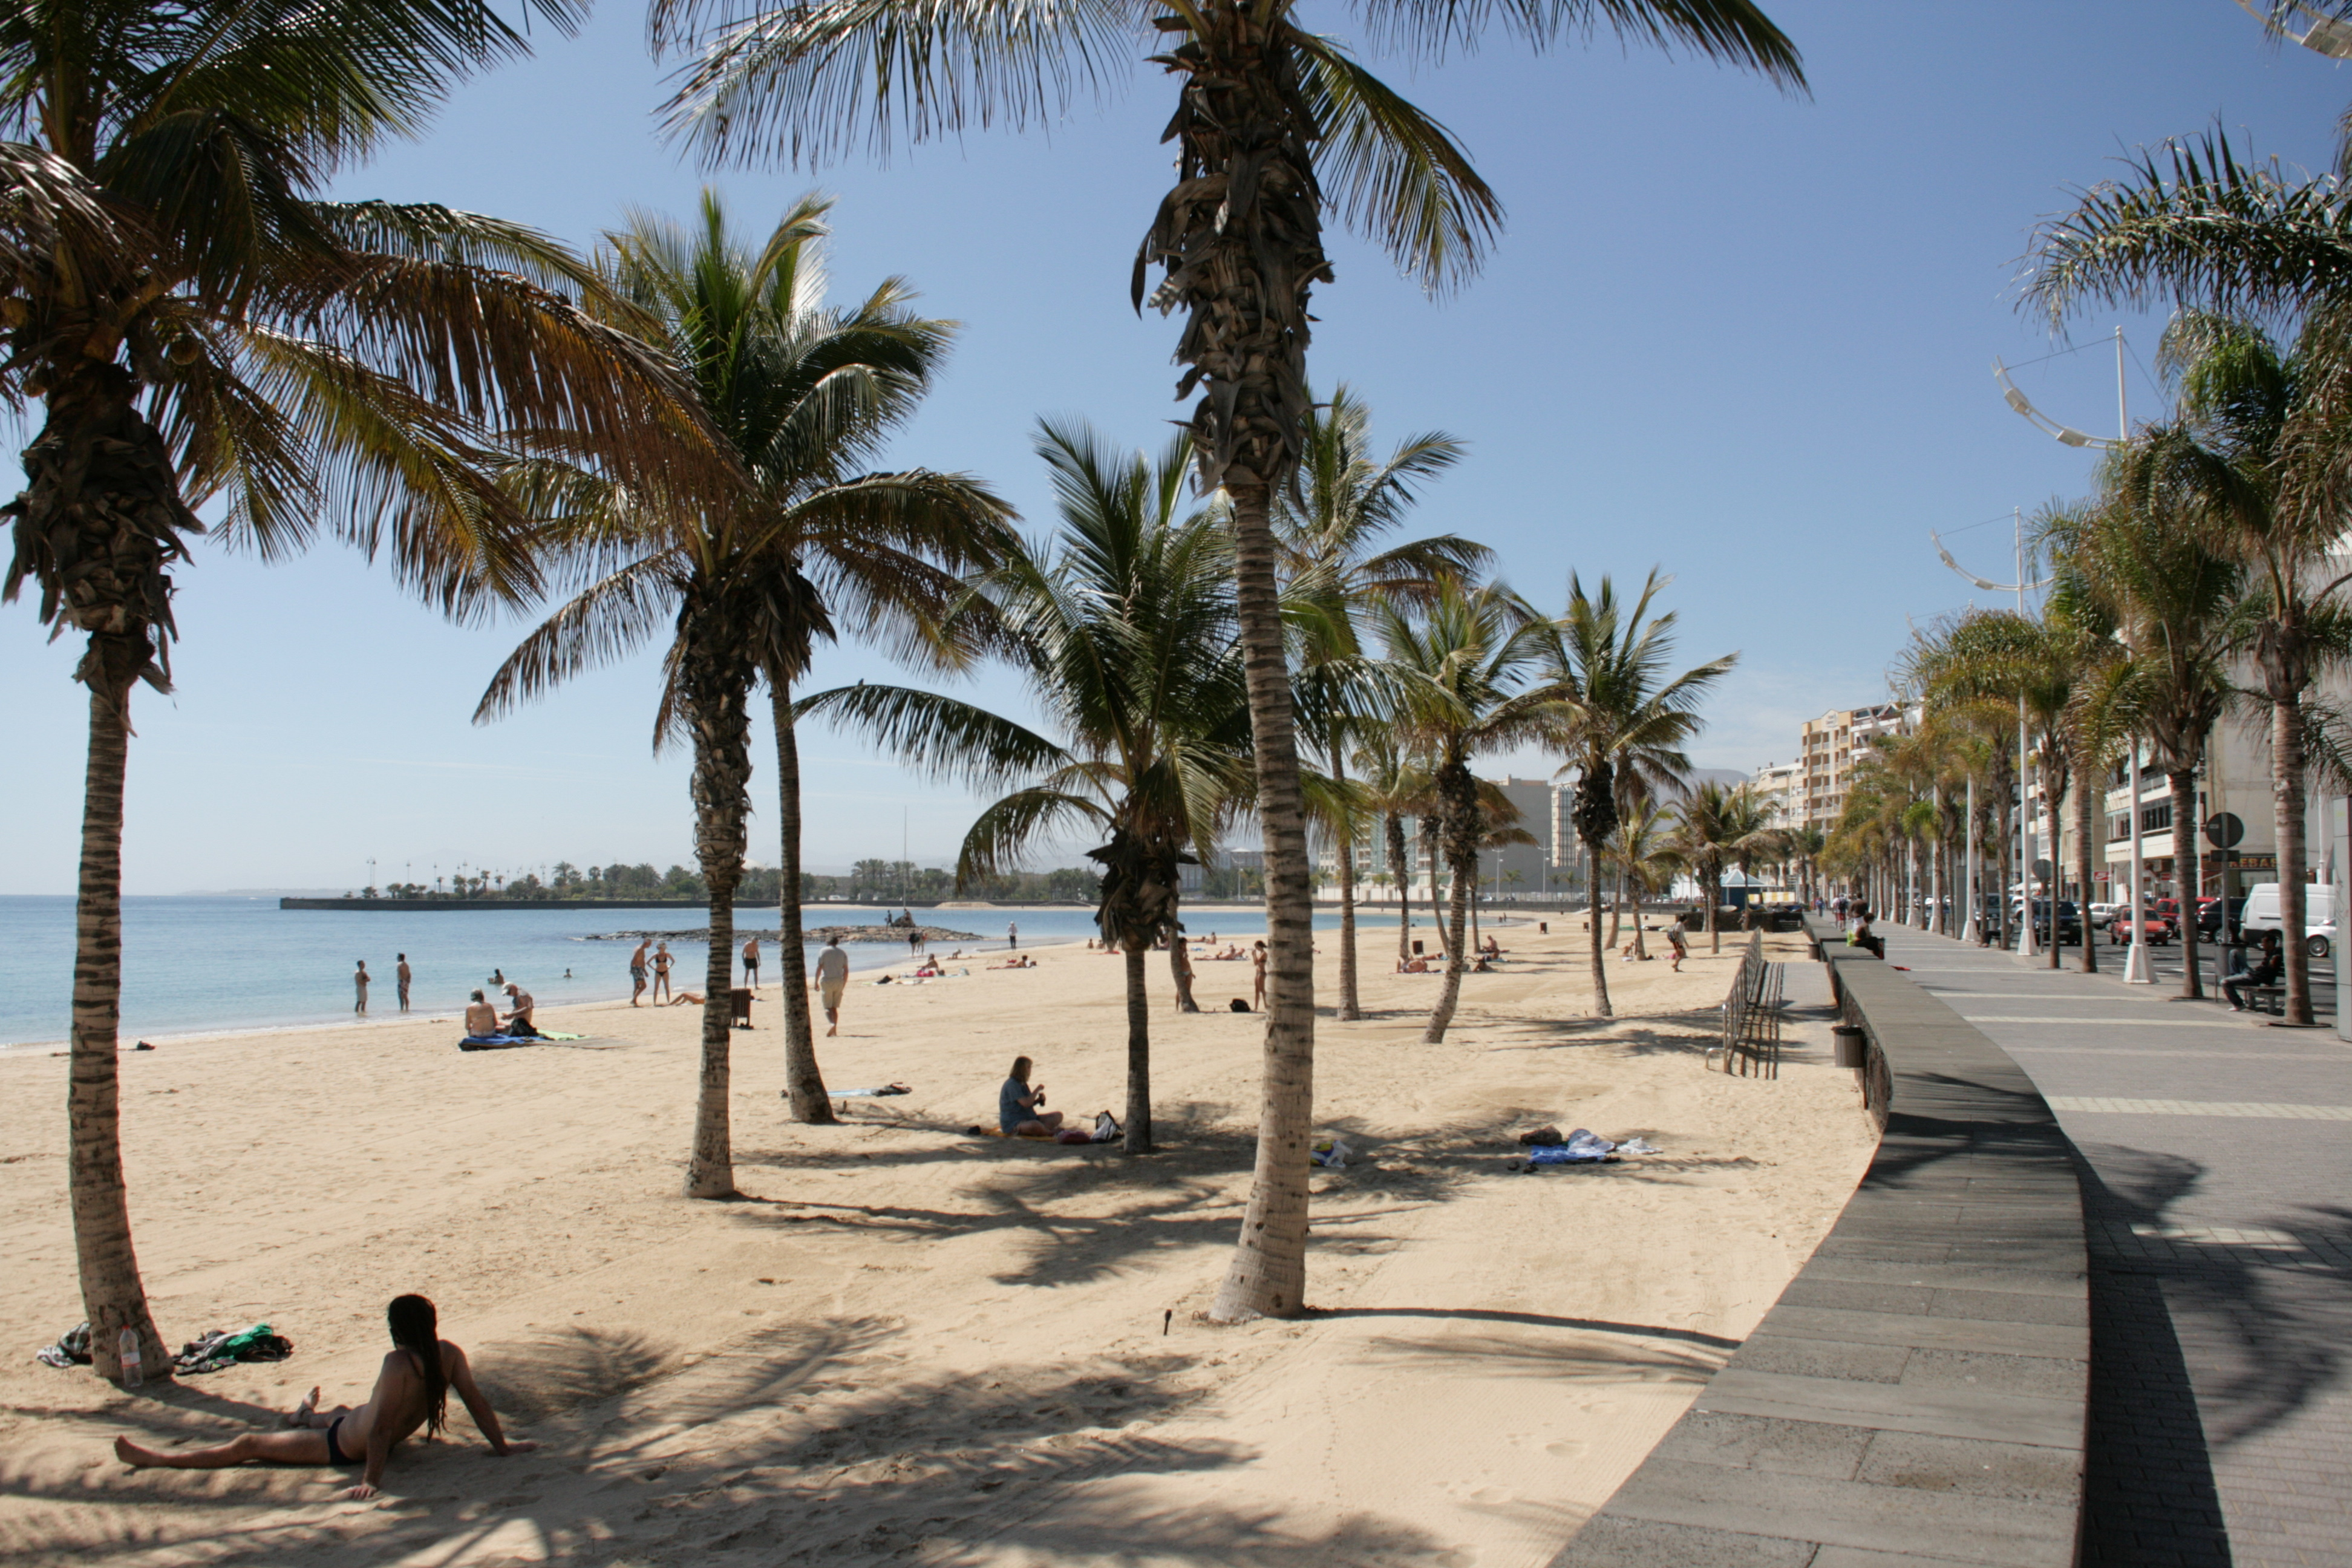 Playa Reducto Beach, Arrecife